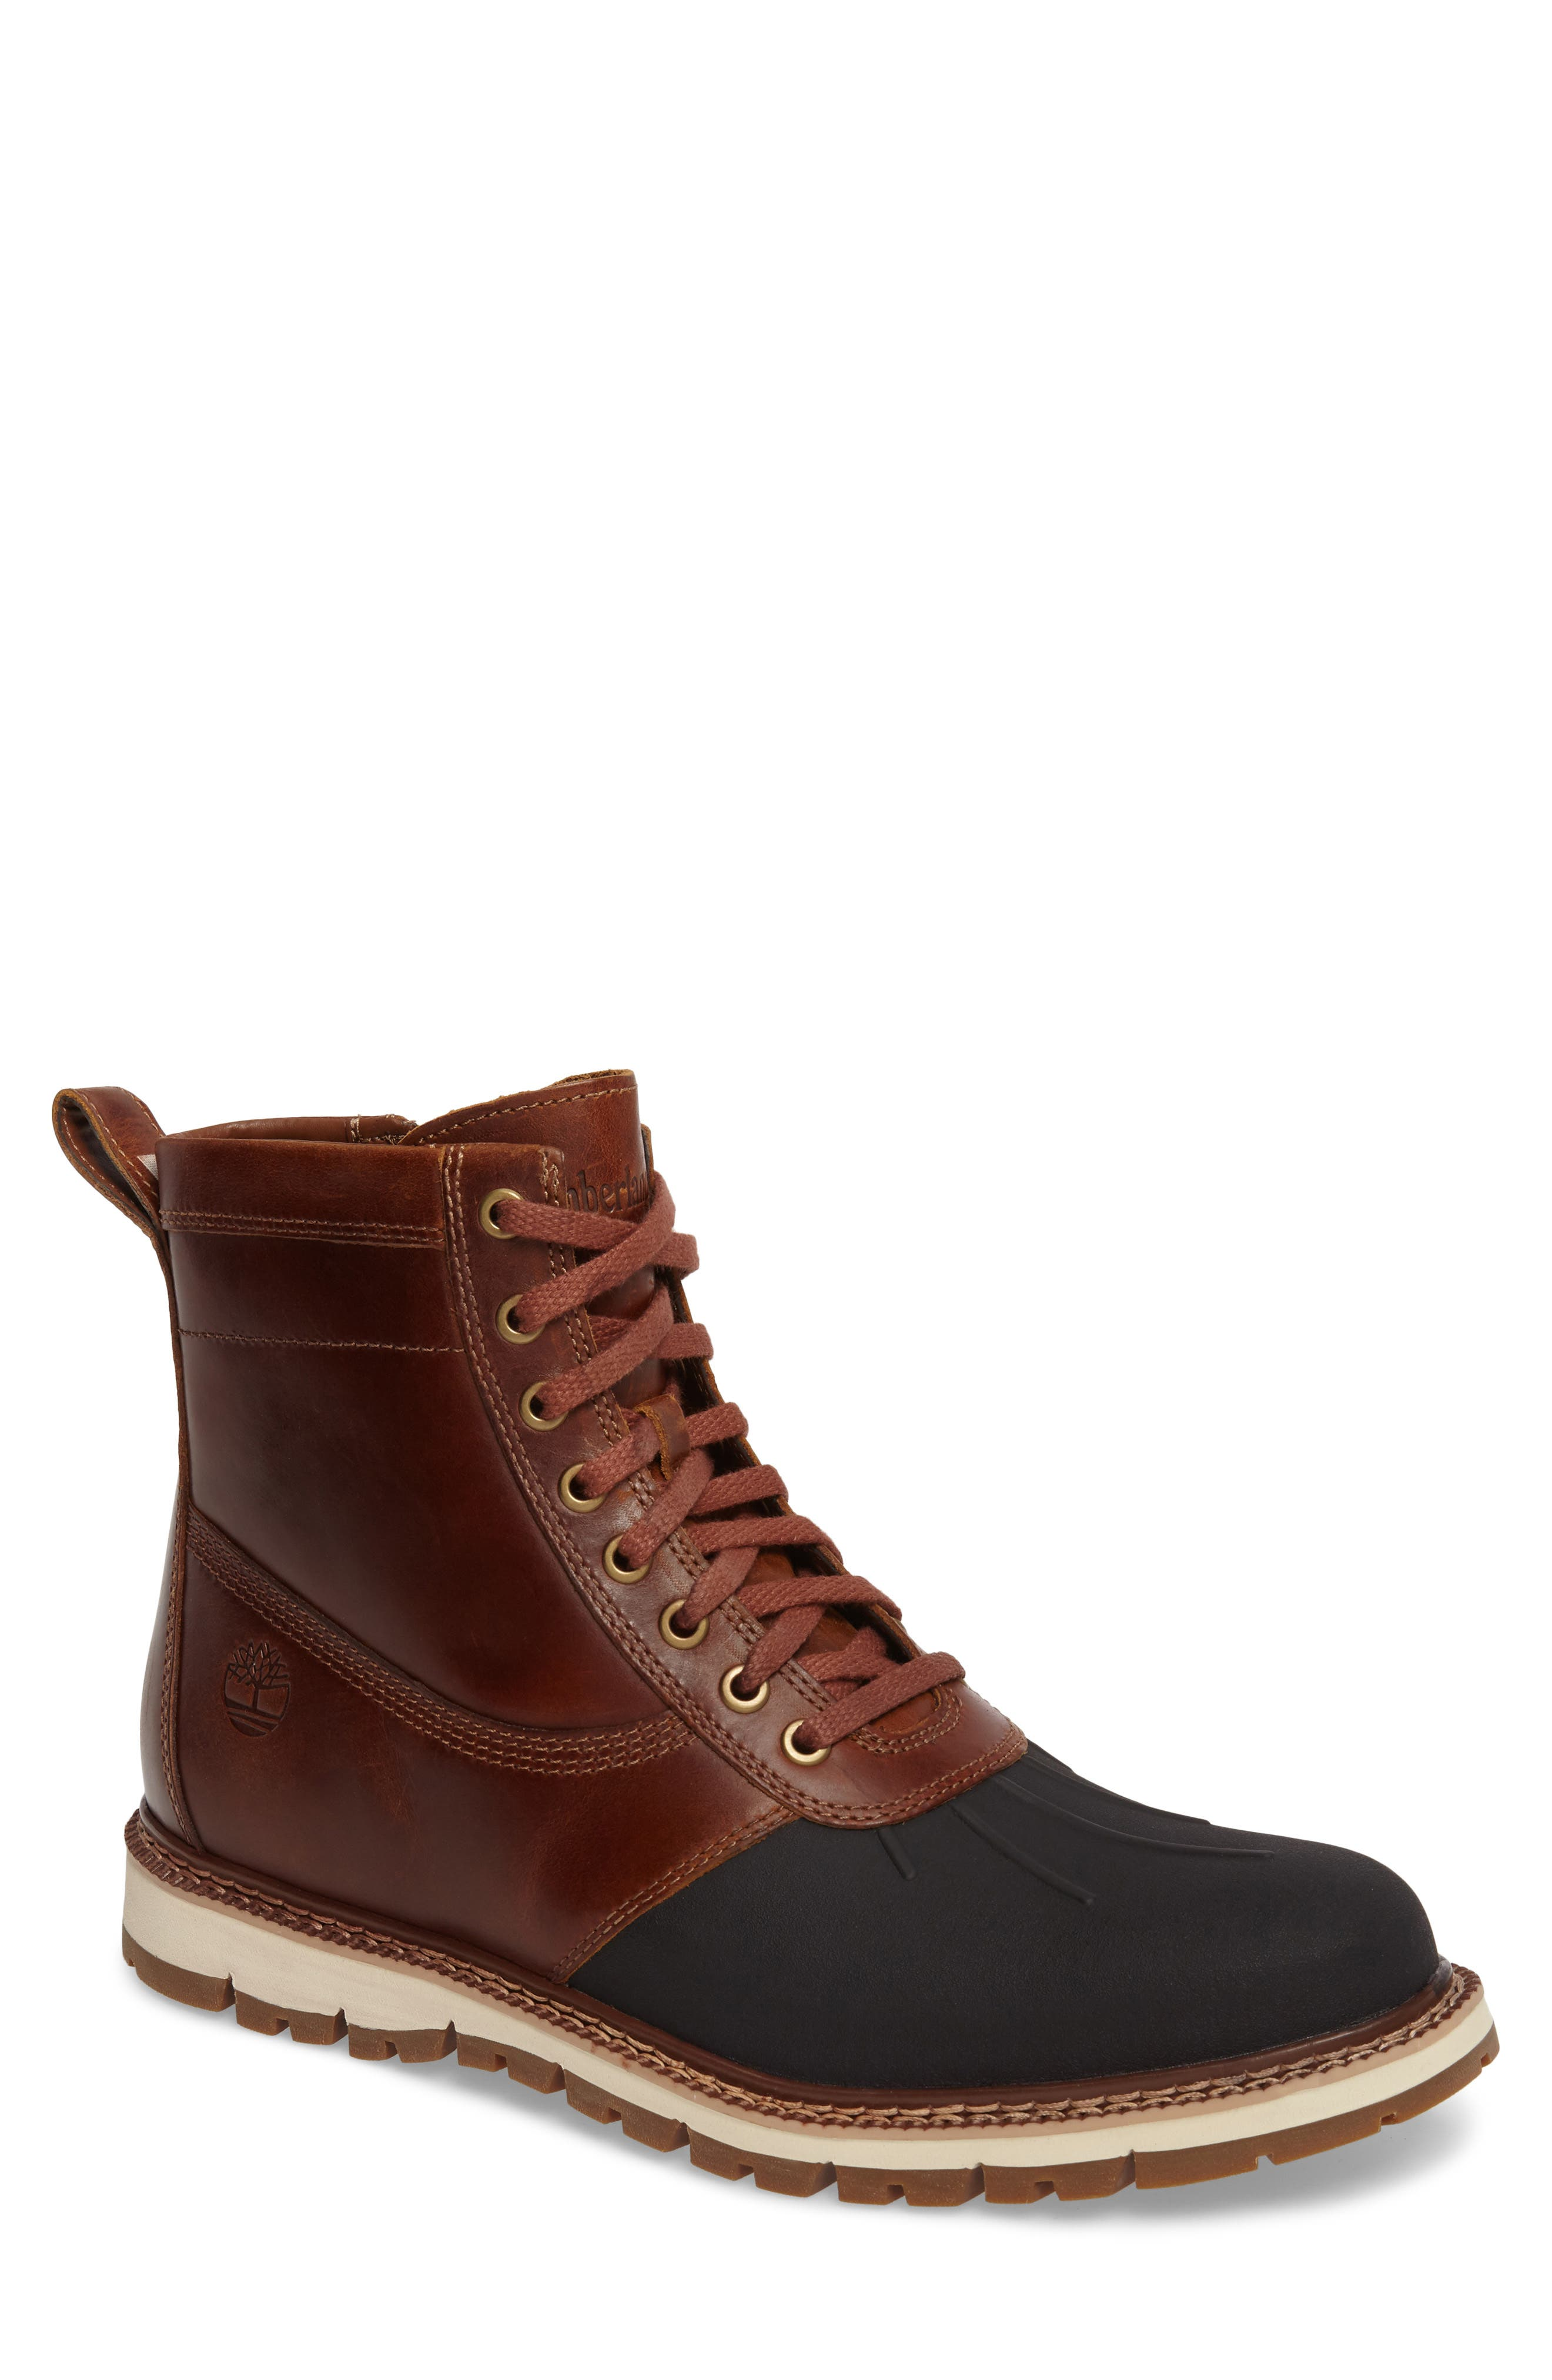 Main Image - Timberland 'Britton Hill' Moc Toe Boot (Men)